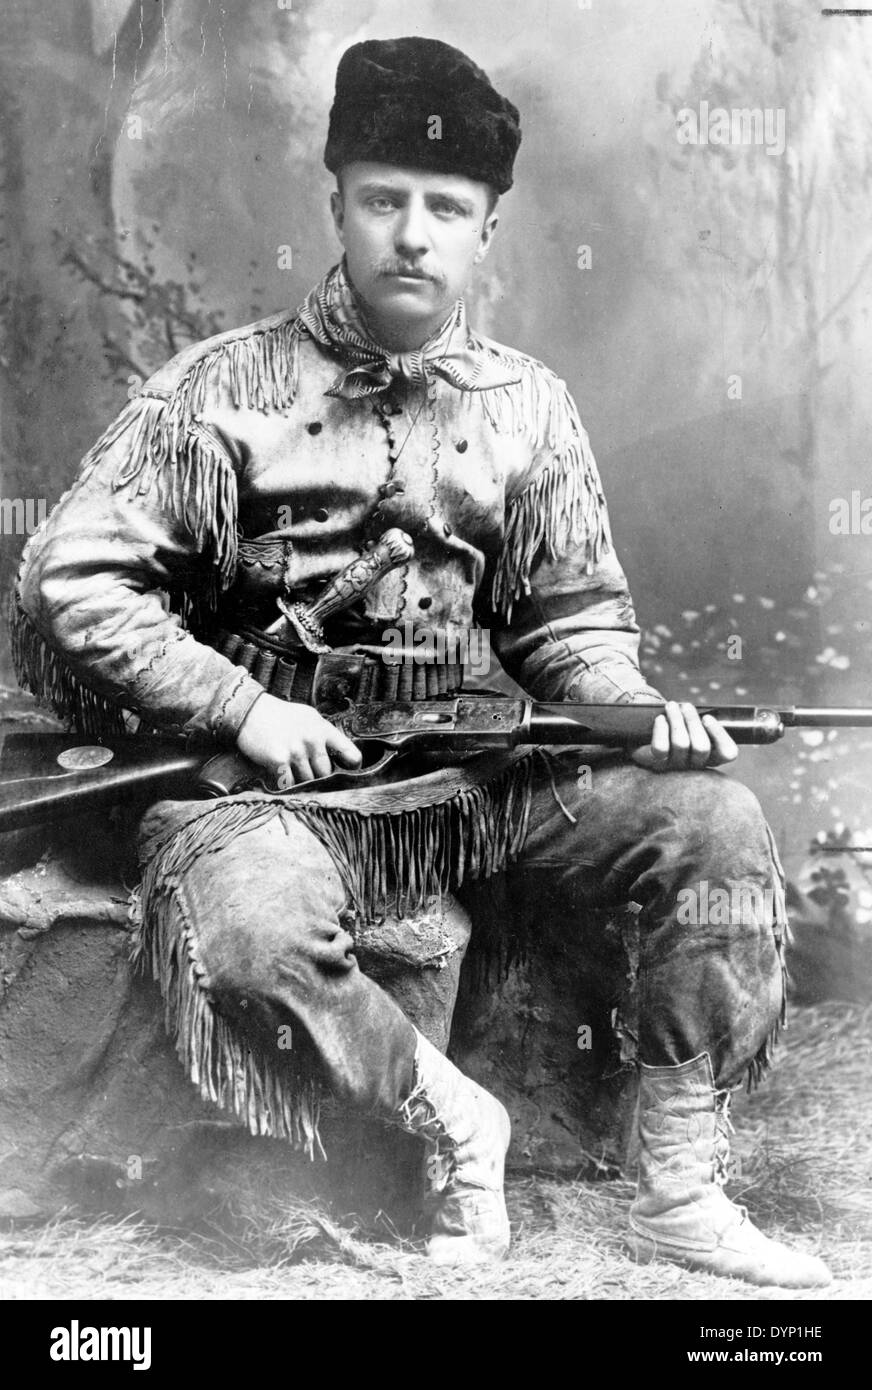 Theodore Roosevelt, 26th President of the United States